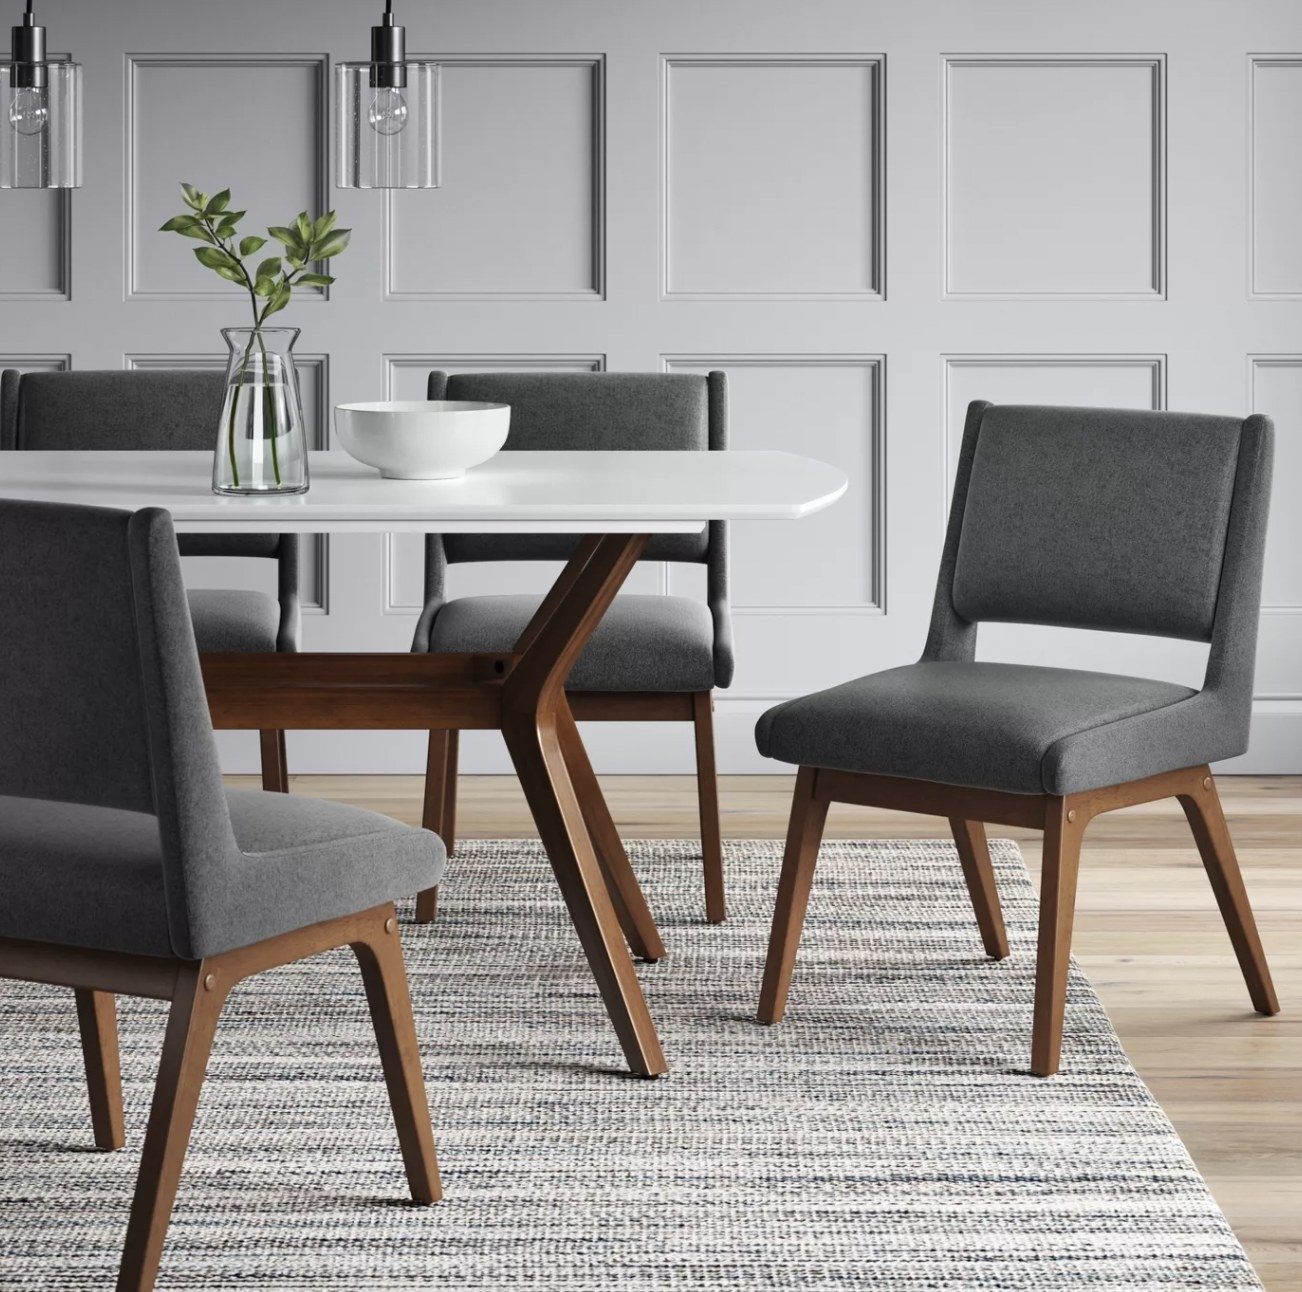 a grey upholstered dining chair with a backrest and tan wooden legs